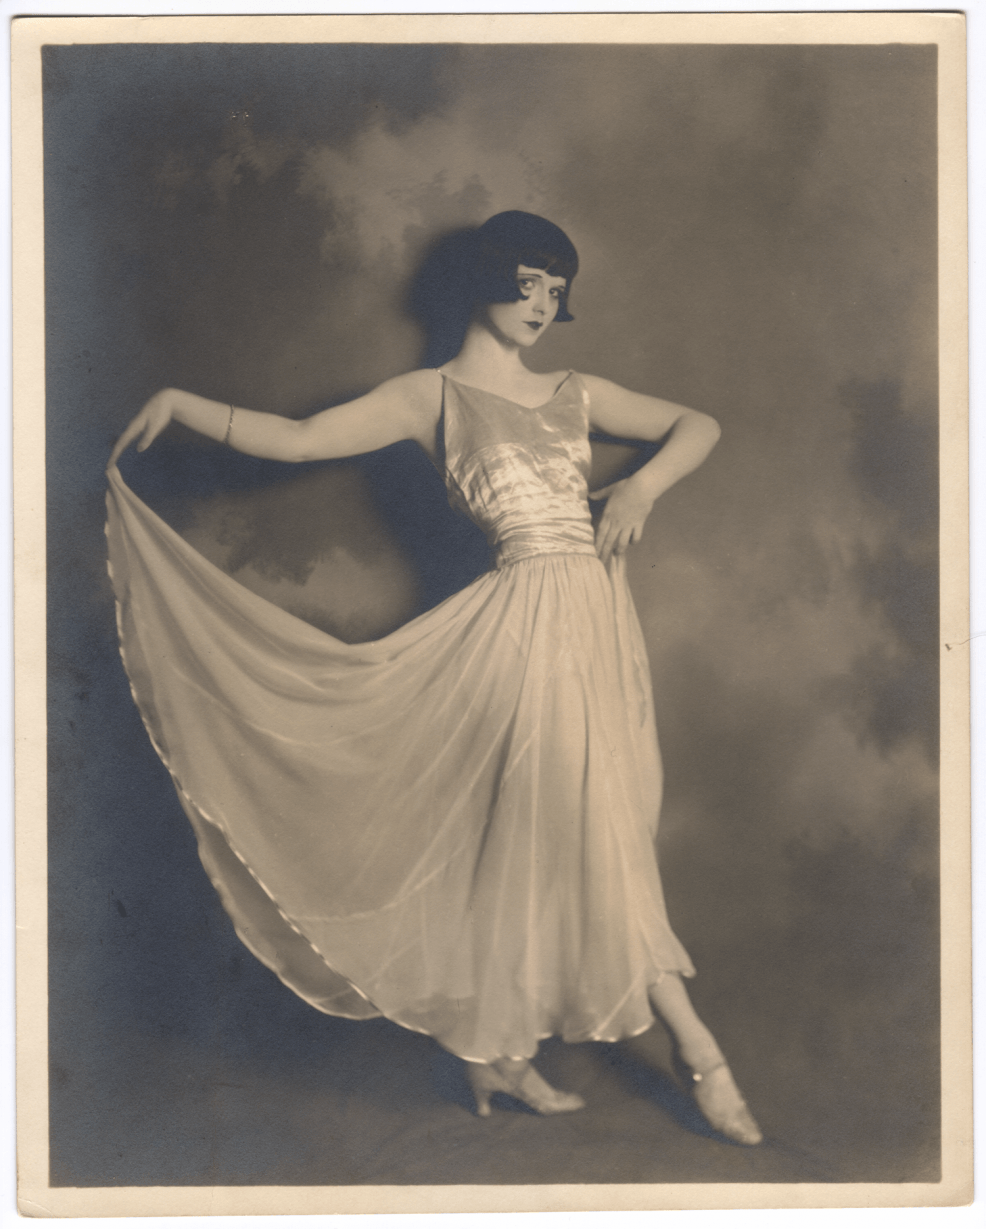 1923 Louise Brooks Dances at Miller Theatre